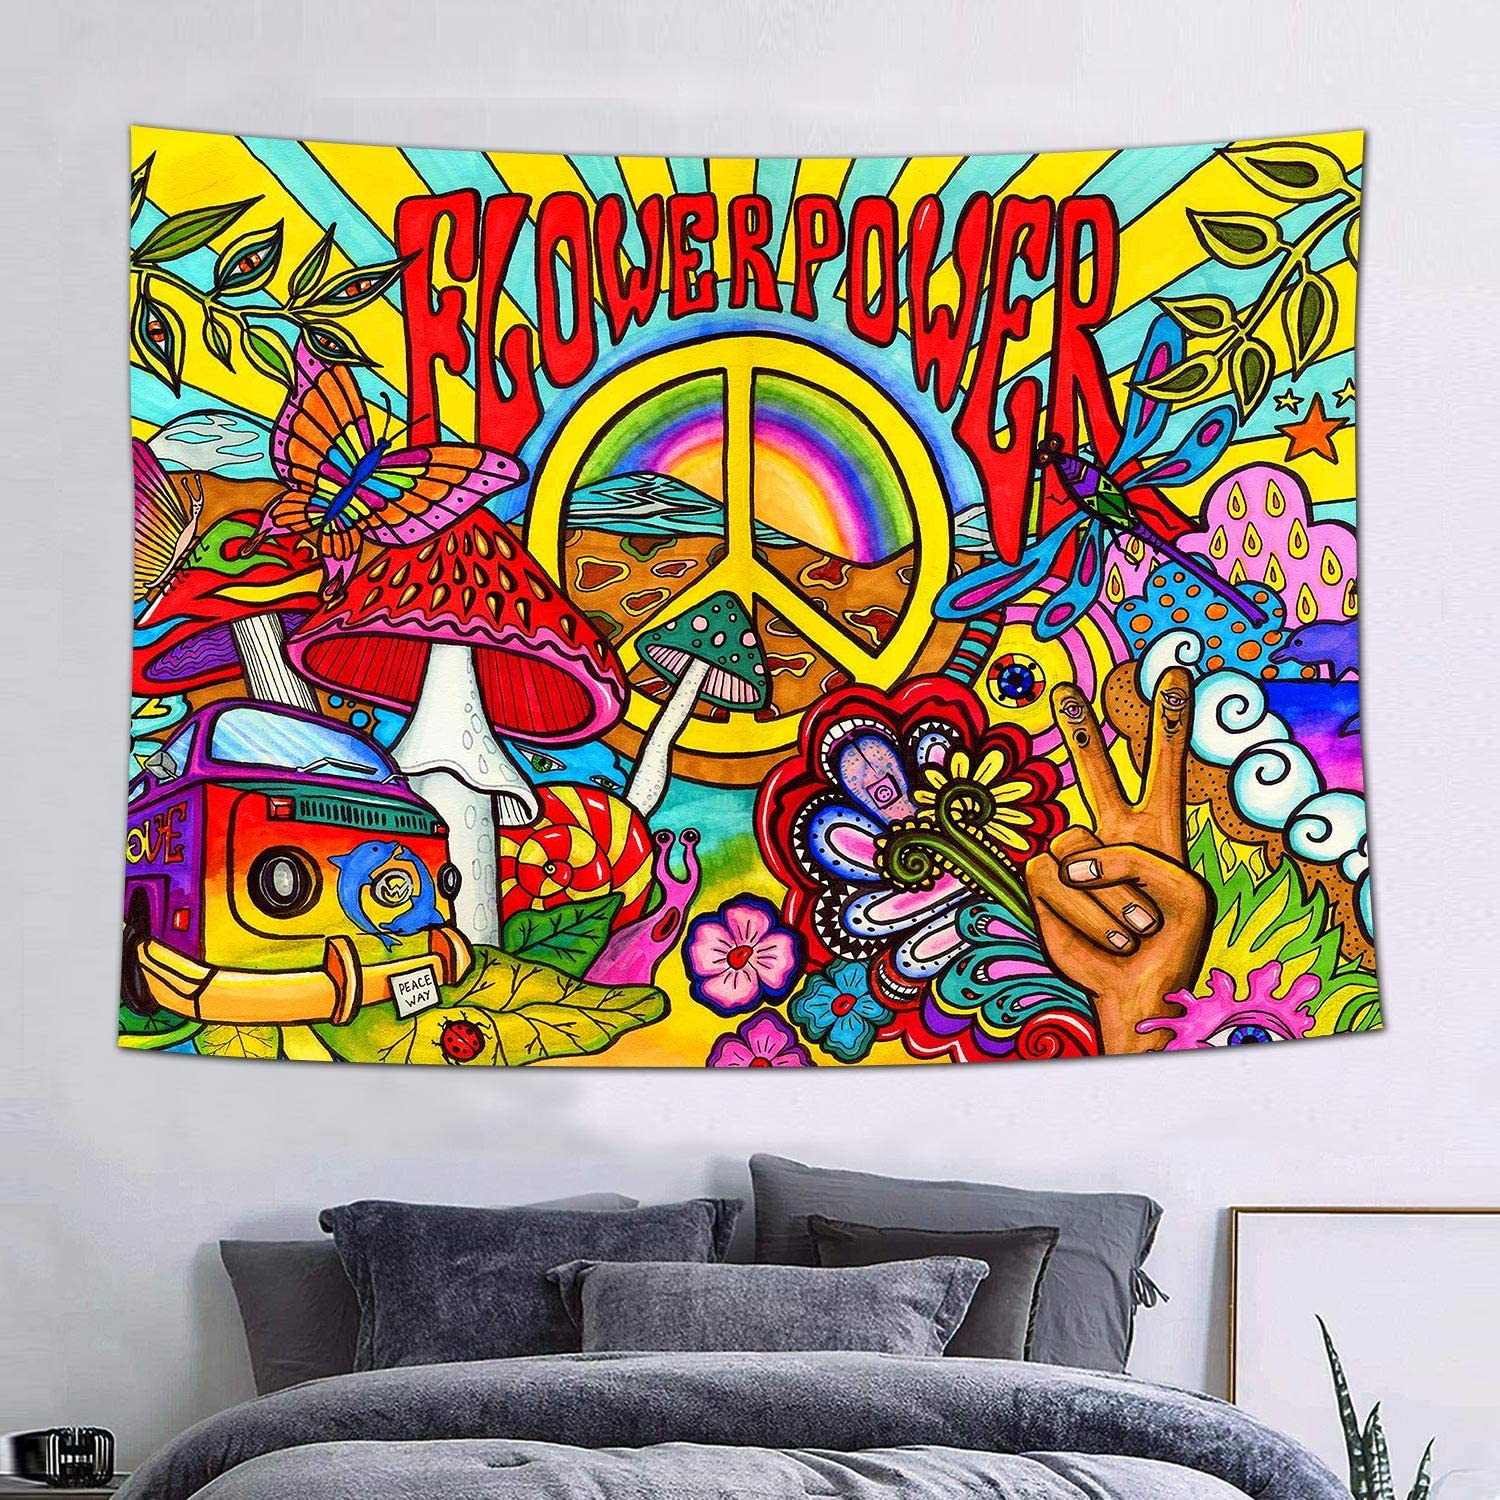 FEASRT Groovy Tapestry Peace and Love Hippie Tapestries Art Wall Hanging for Living Room Bedroom Home Dorm Decor 60×40 Inches GTZYAY336